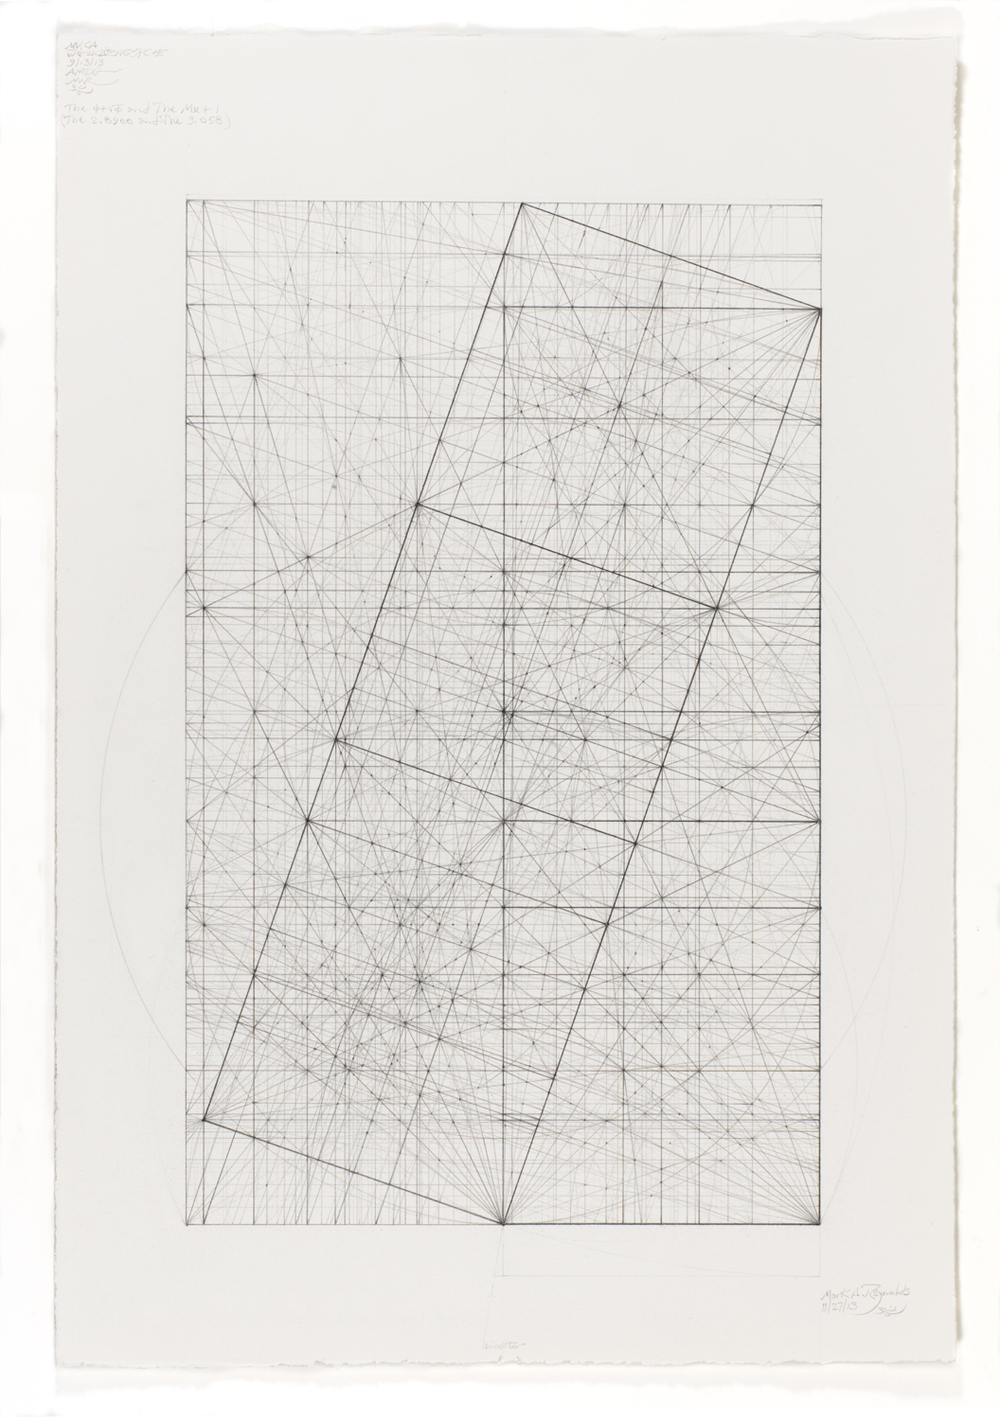 Phi Square Root Phi Series: 11.27.13, 2013   17 in. x 13.375 in. (Sheet size 22 in. x 15 in.) Graphite and ink on cotton paper